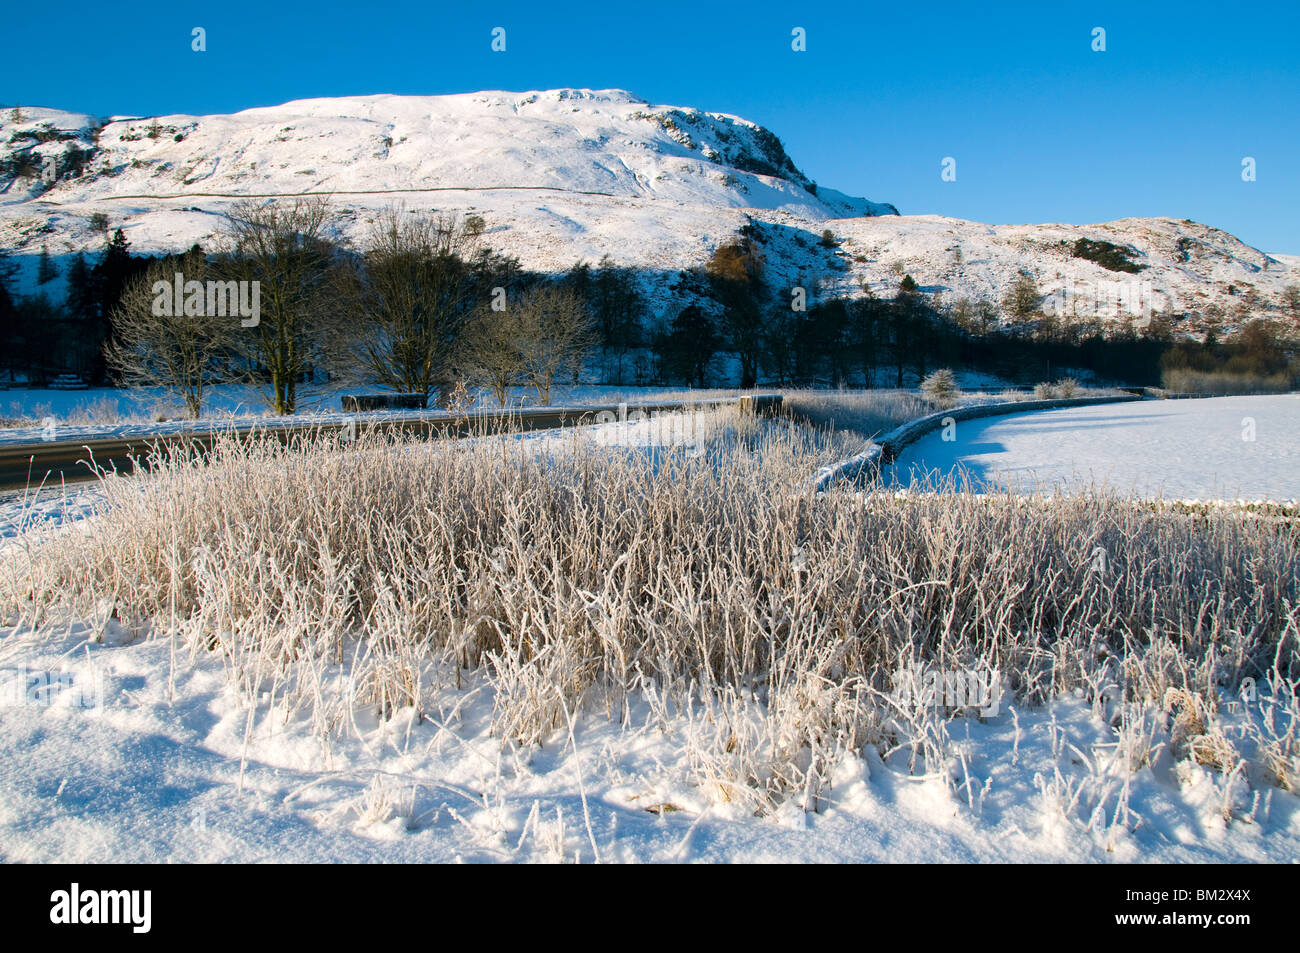 Dod Crag from Shoulthwaite Farm in winter, on the A591 road near Keswick, Lake District, Cumbria, England, UK - Stock Image